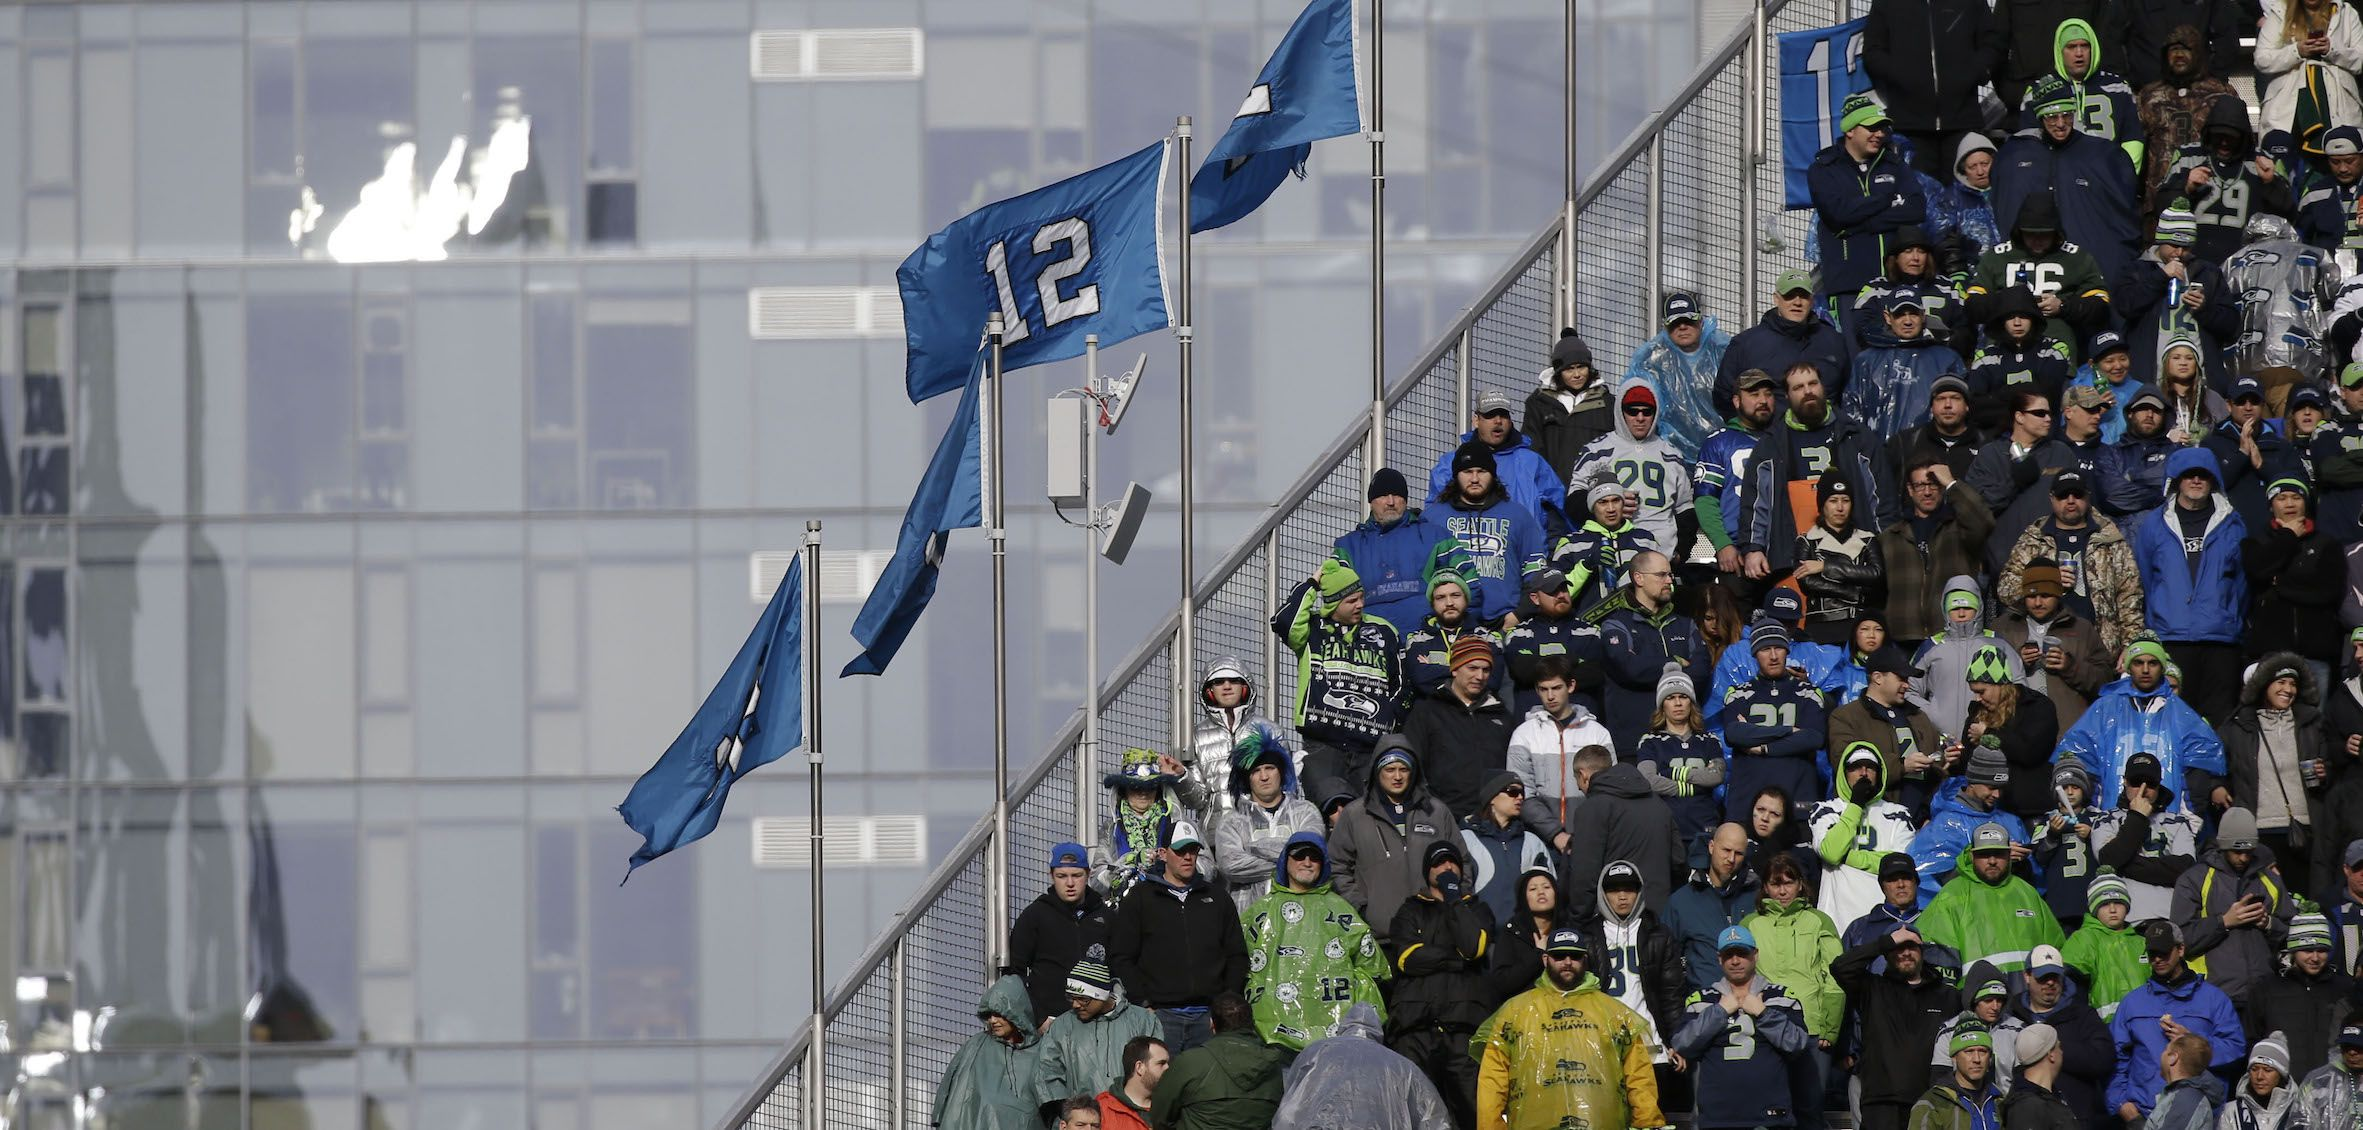 Seattle Seahawks fans watch during the first half of the NFL football NFC Championship game against the Green Bay Packers Sunday, Jan. 18, 2015, in Seattle. (AP Photo/Jeff Chiu)